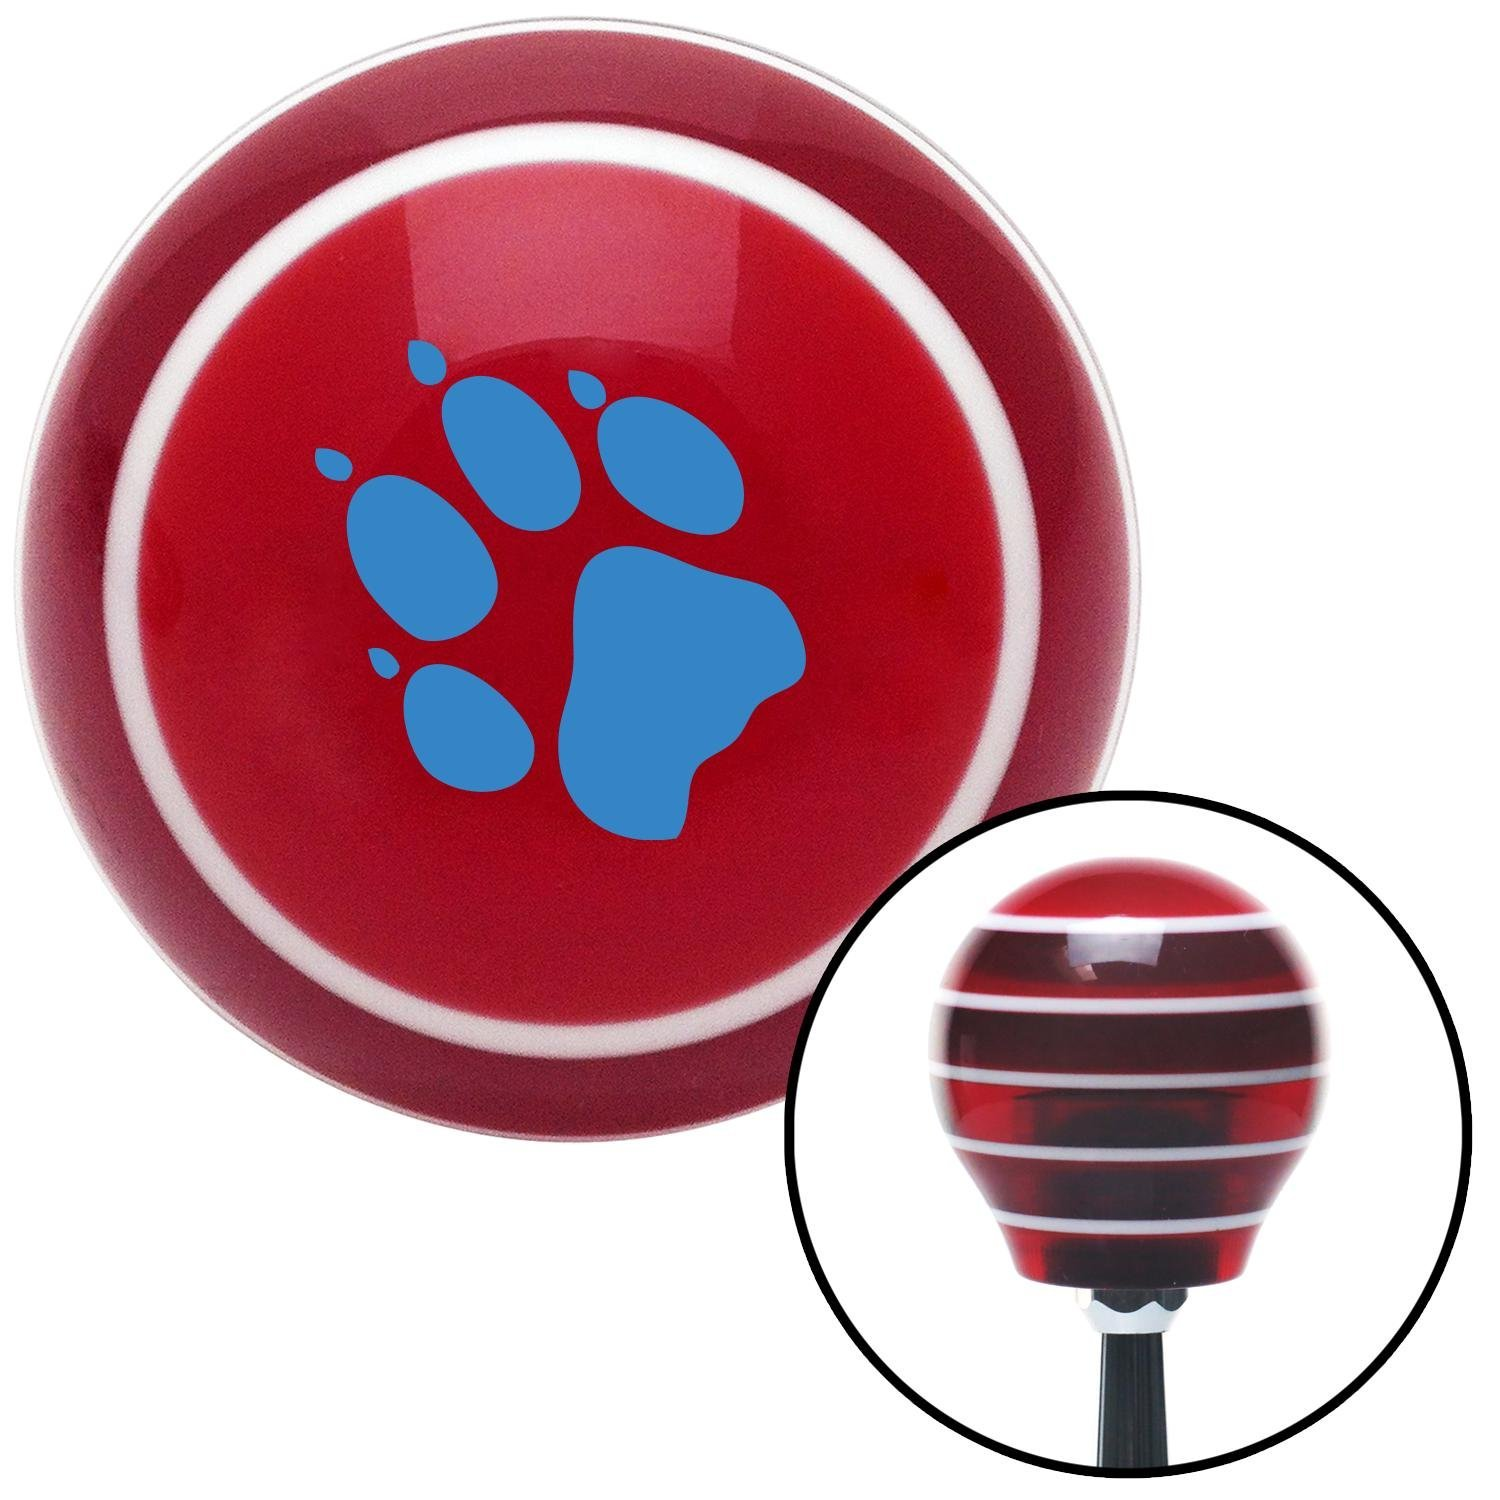 American Shifter 111677 Red Stripe Shift Knob with M16 x 1.5 Insert Blue Paw Print